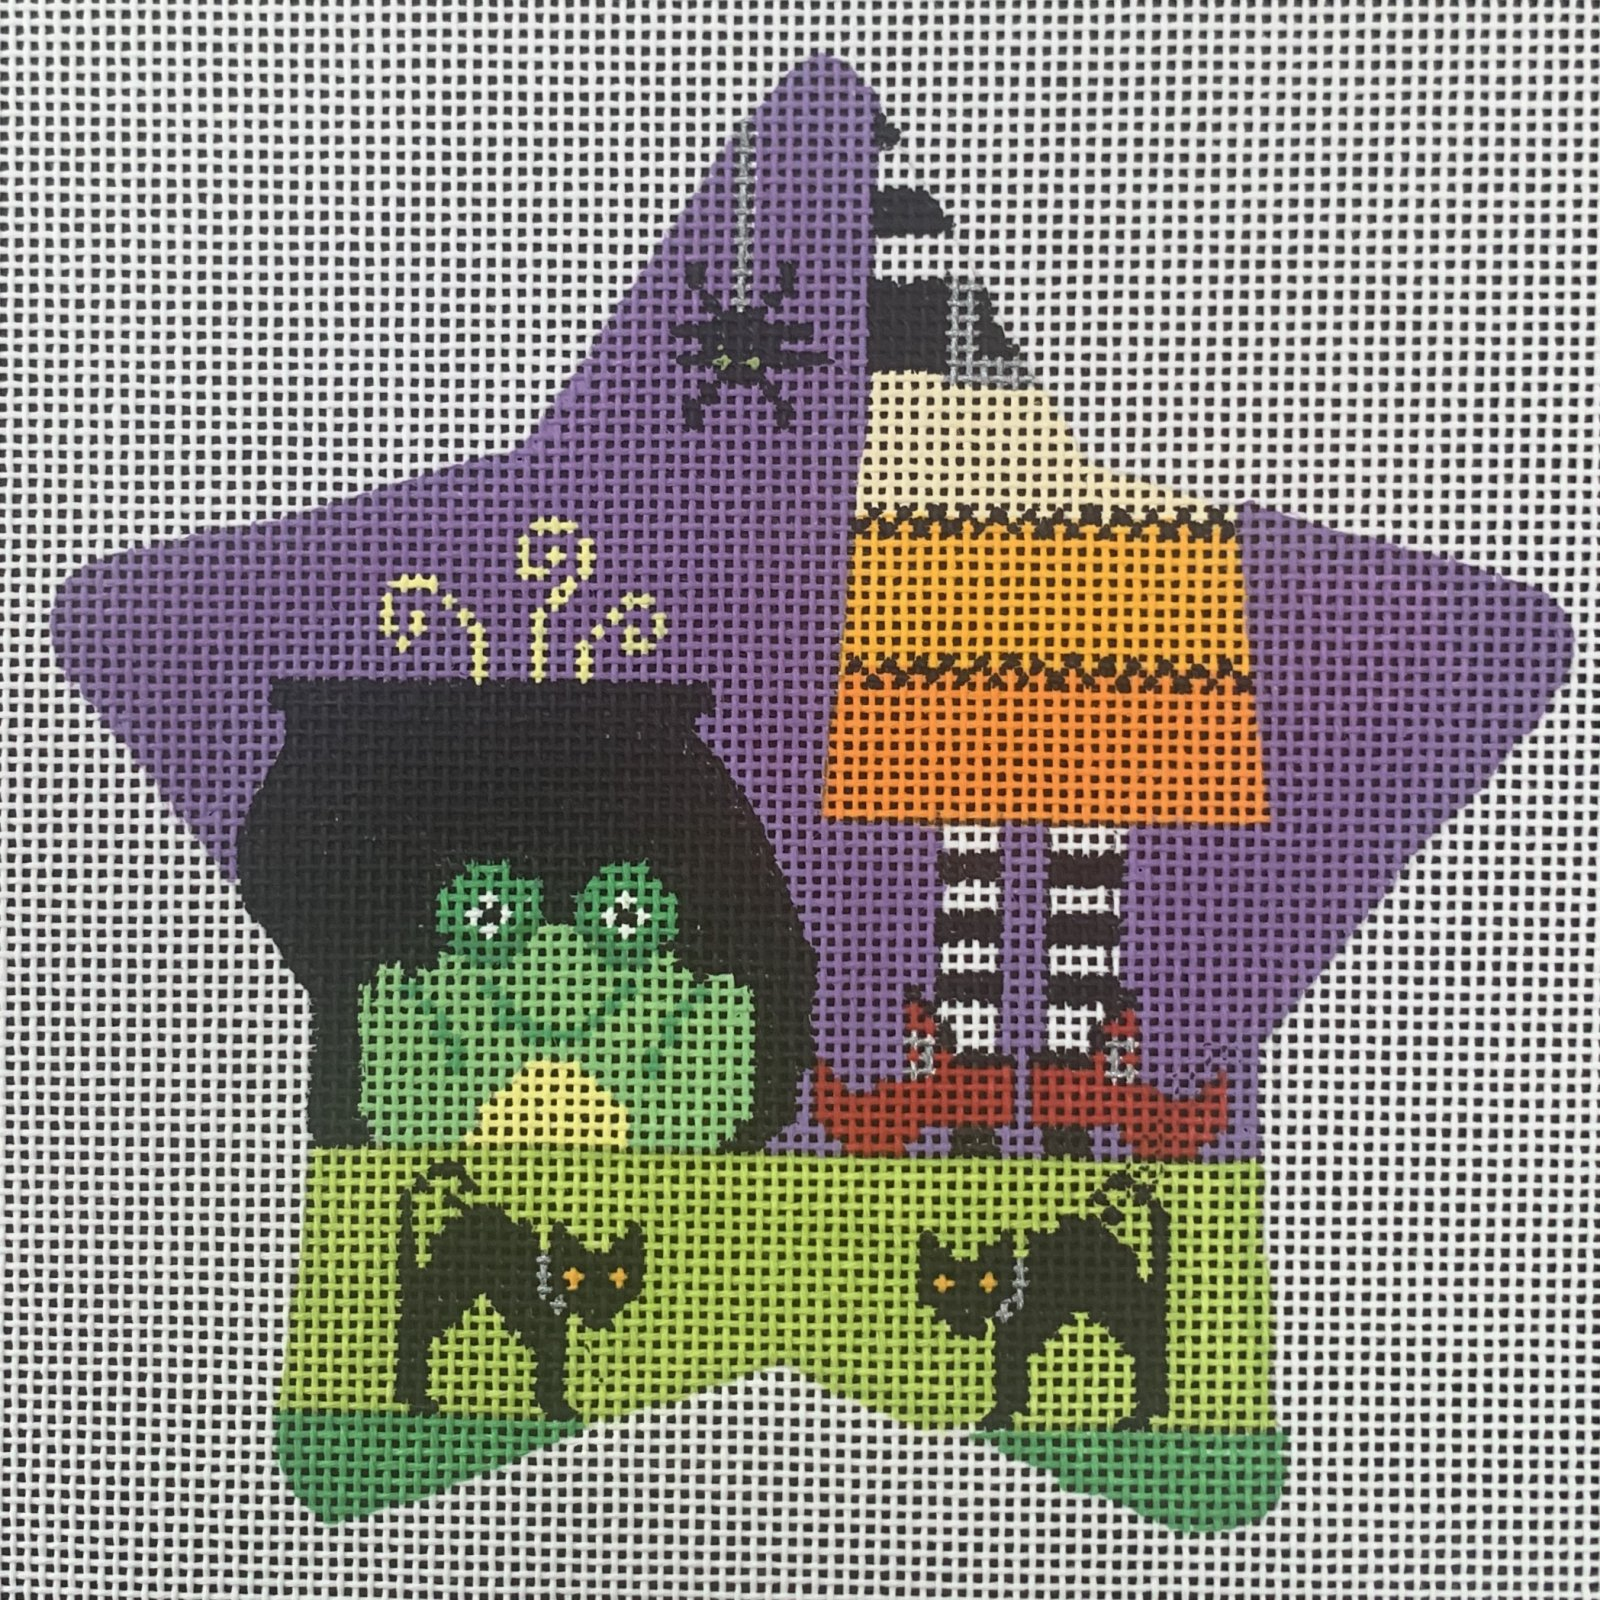 Spooky Star - Frog and Witch with Stitch Guide